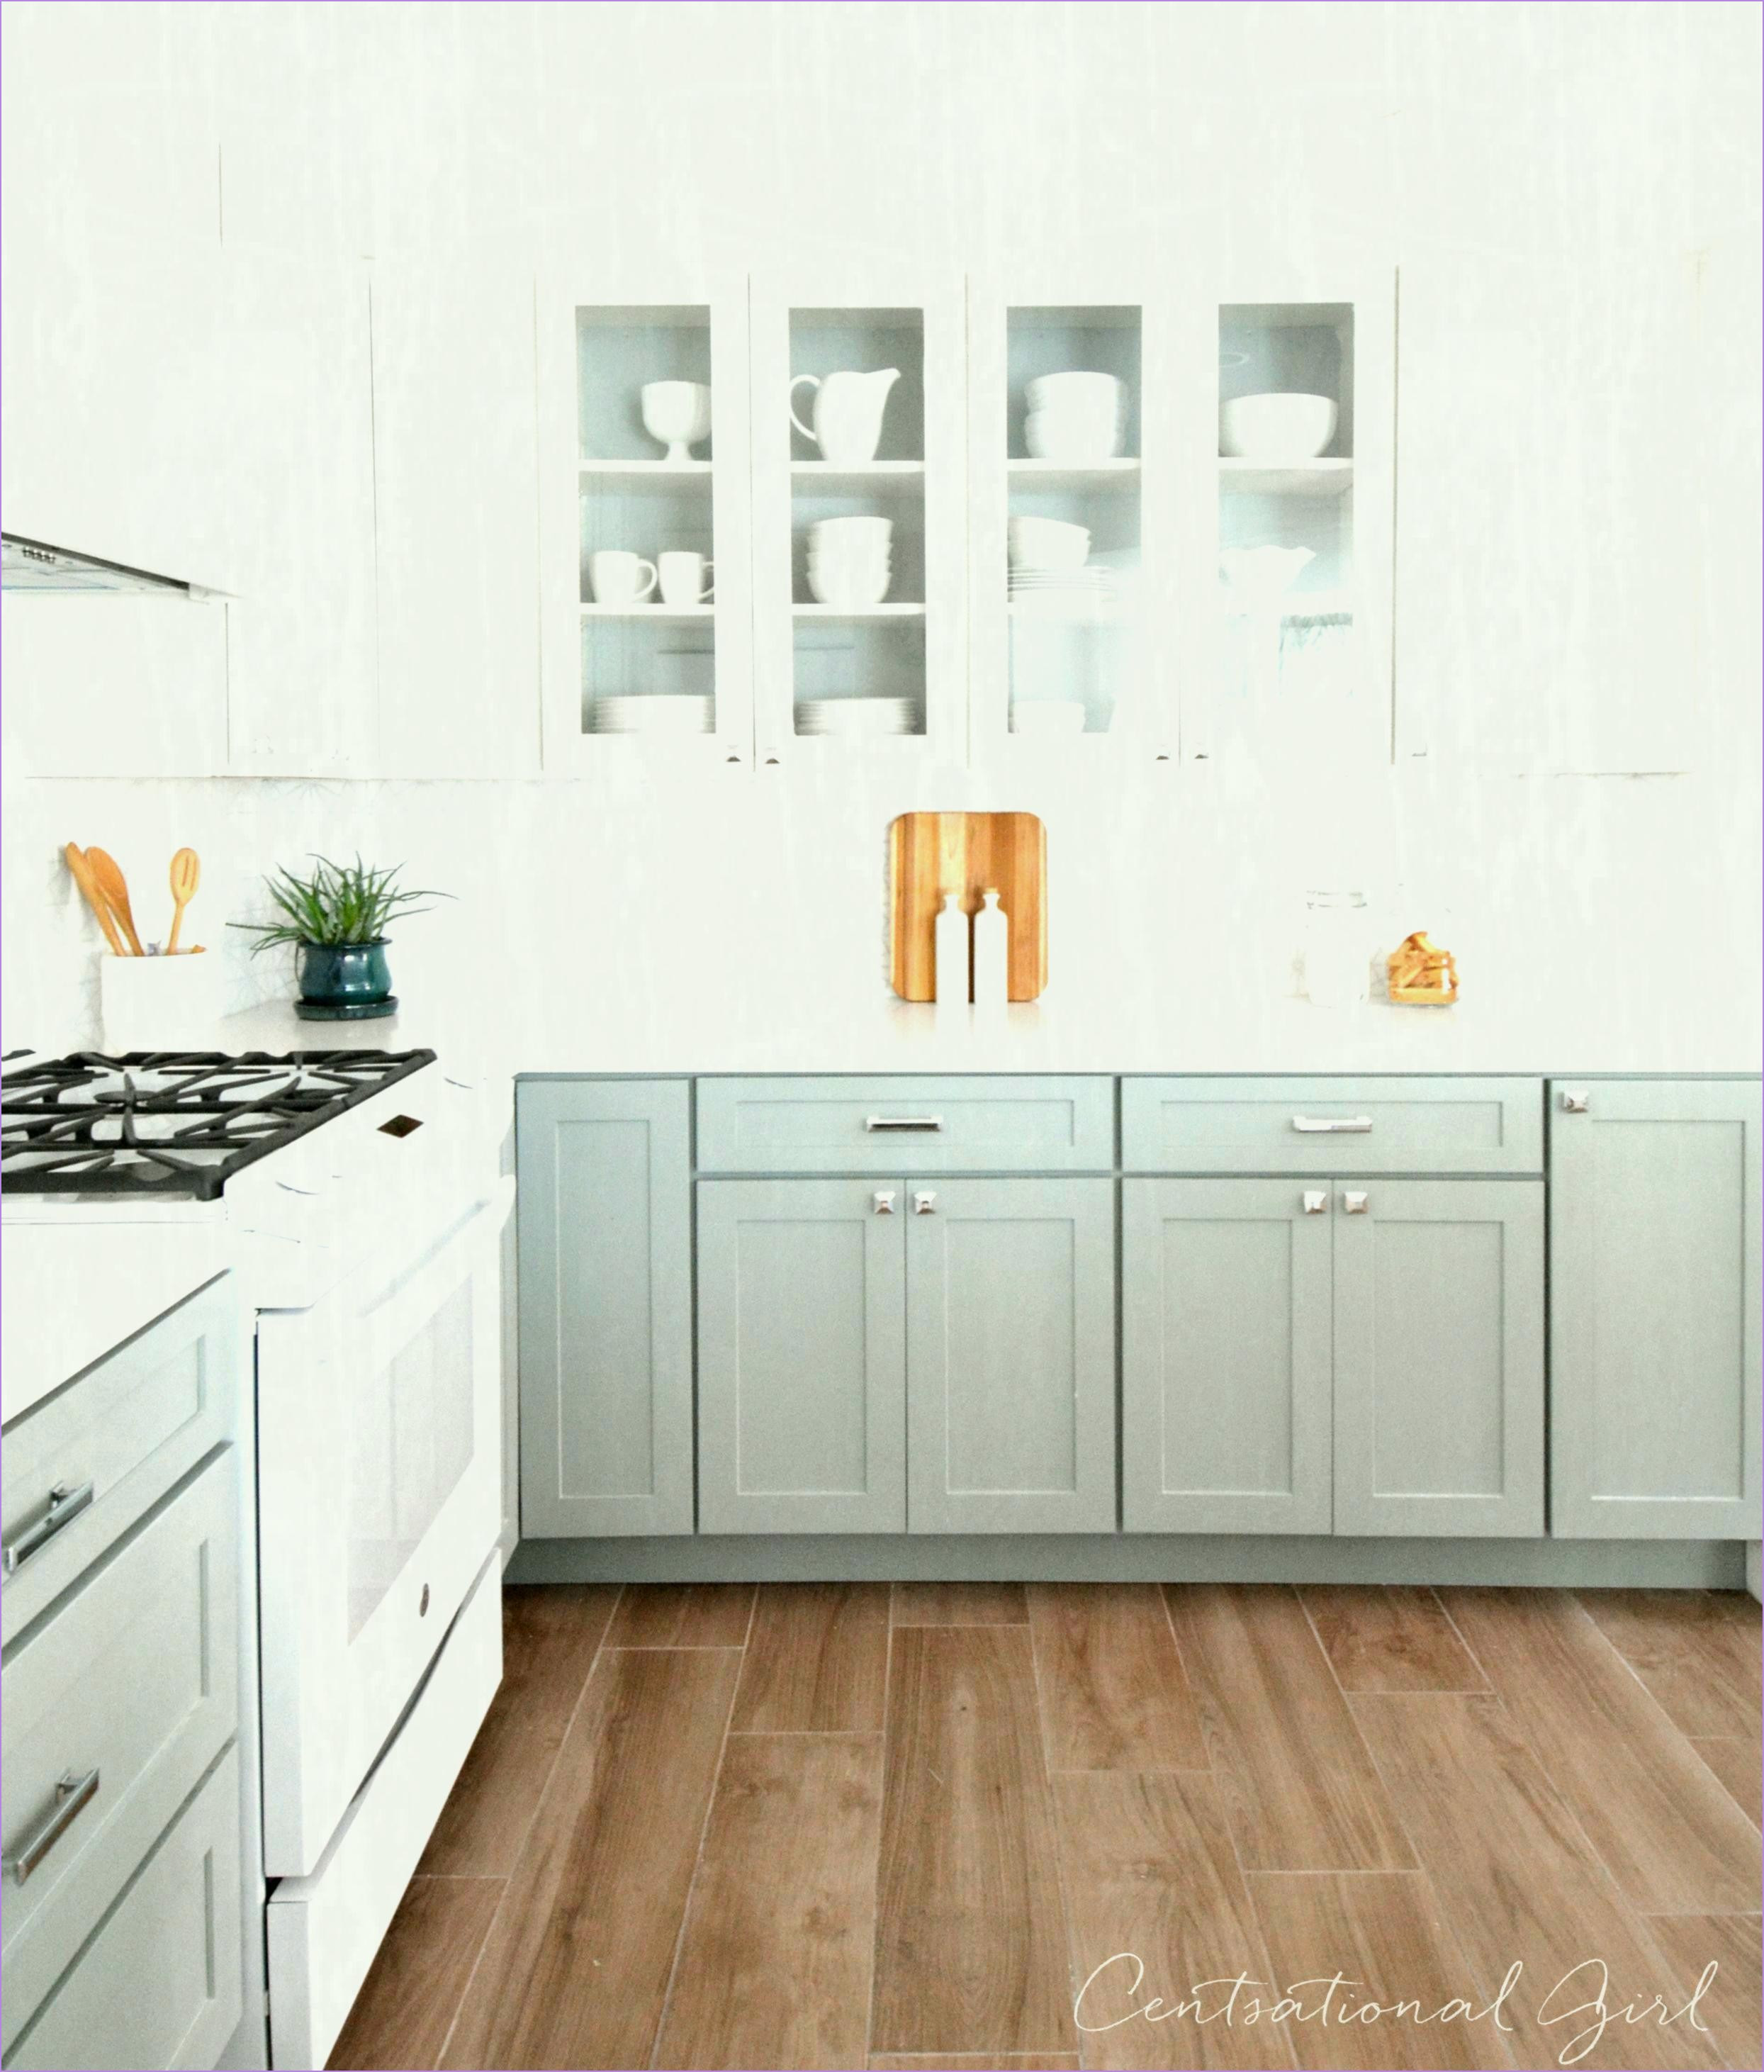 kitchen hardwood floors vs tile of 43 kitchen cabinets color combinations southern living house plans pertaining to what color kitchen cabinets are timeless pin od pou vate a julia de